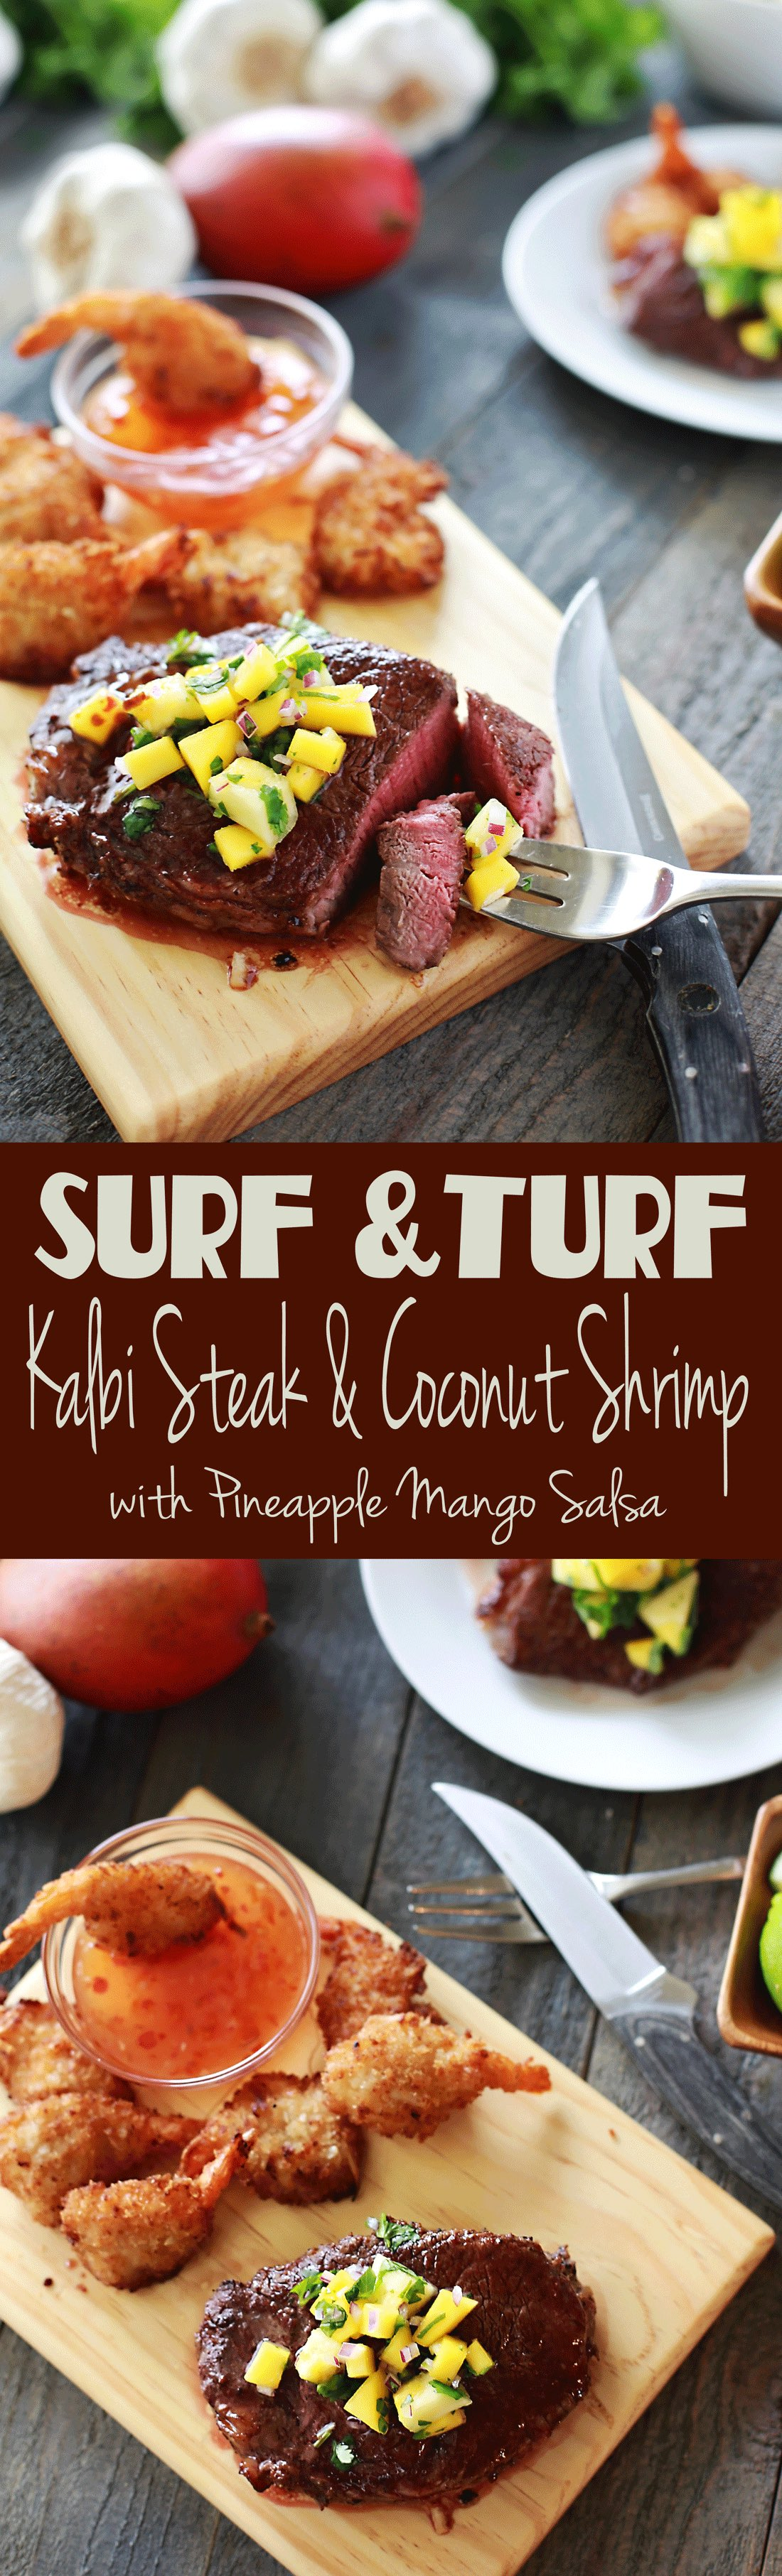 DELICIOUS and easy recipe for surf and turf steak